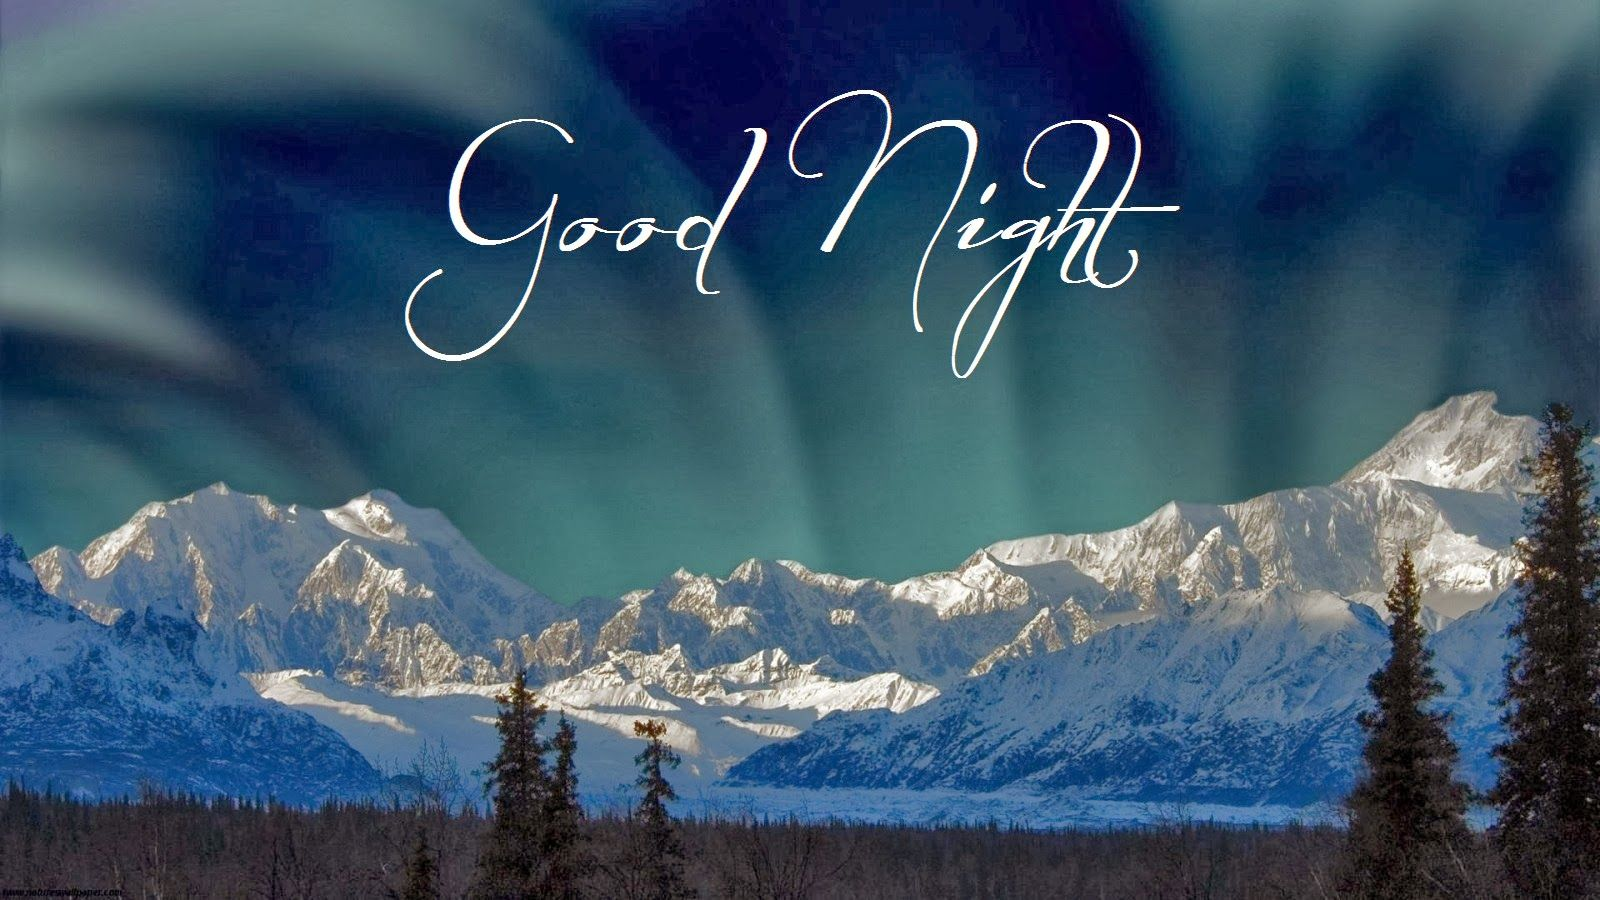 Free beautiful good night wallpaper pictures images scraps free beautiful good night wallpaper pictures images scraps funny scraps for girl voltagebd Gallery